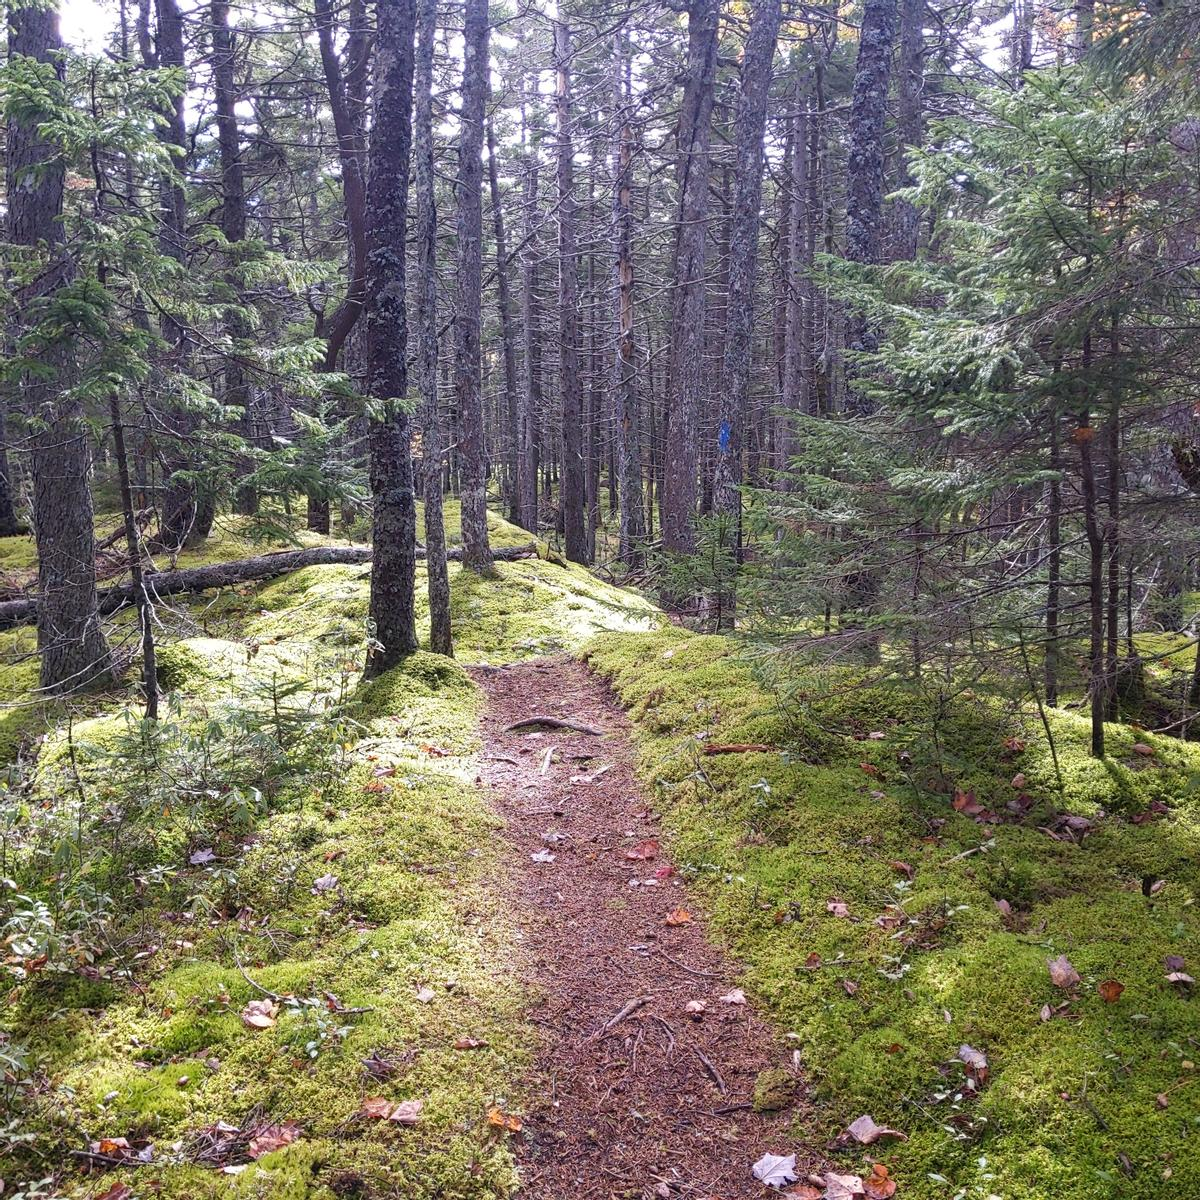 A narrow trail with leaf litter travels through a spruce forest